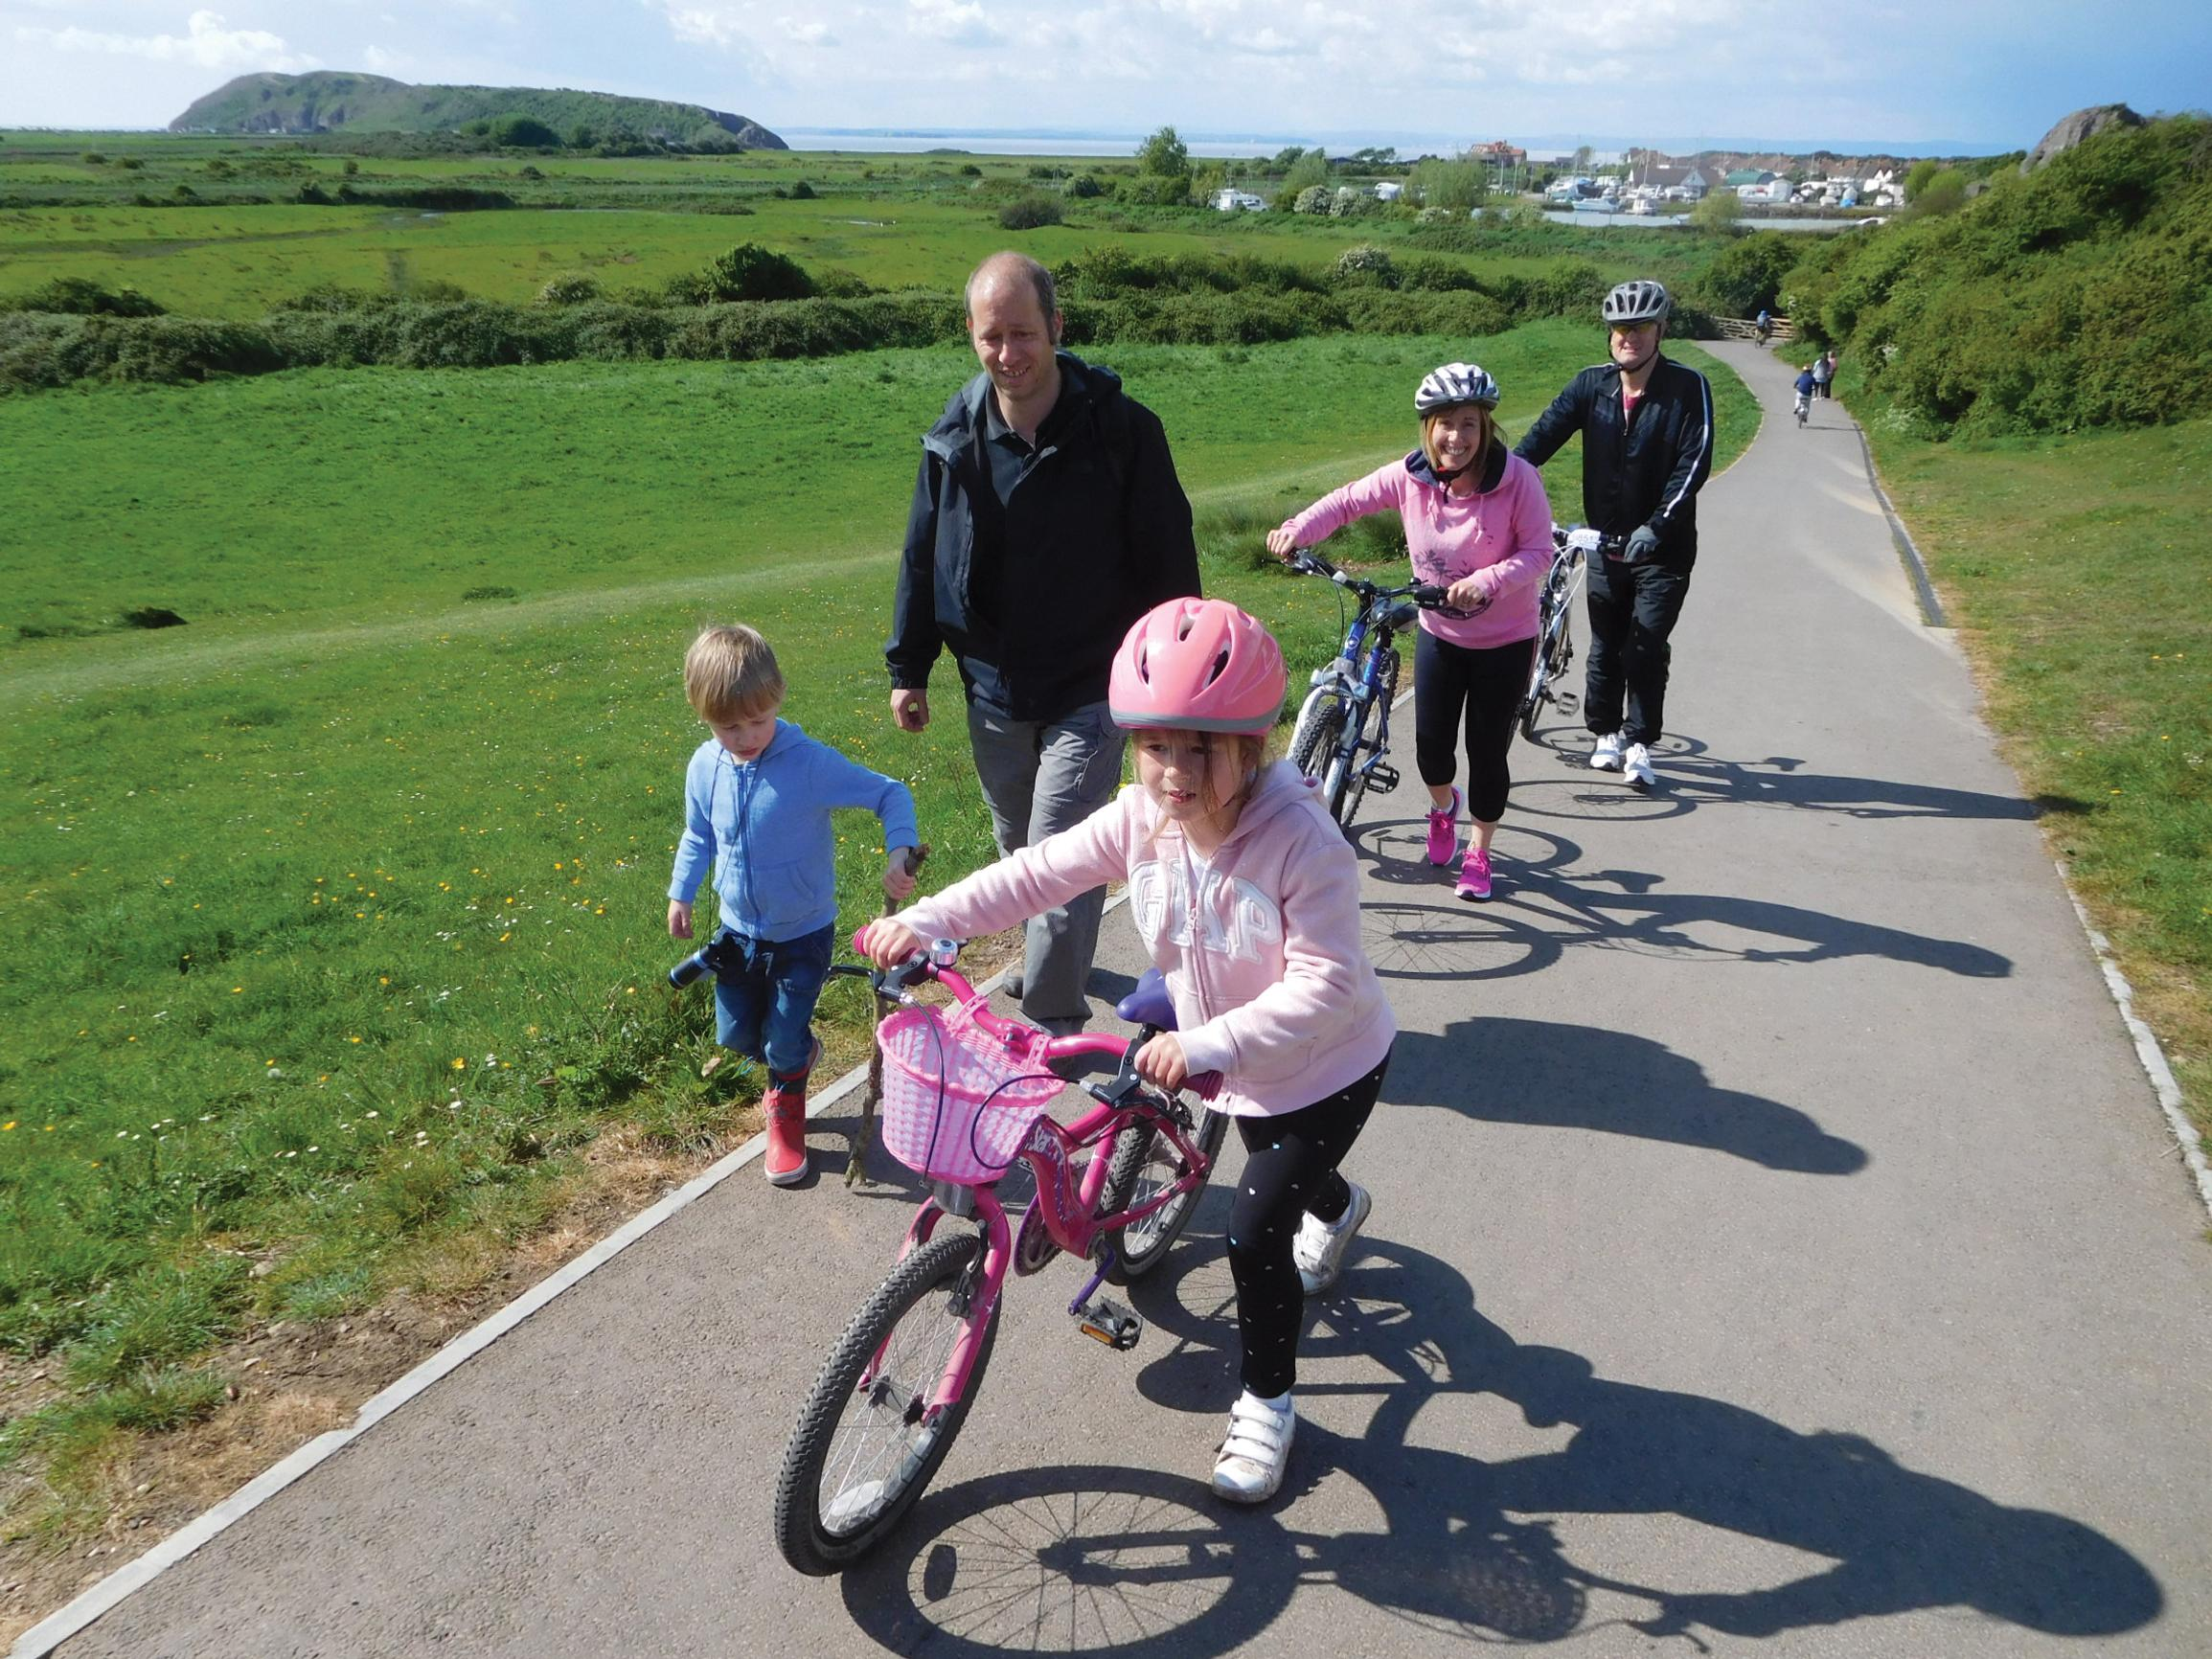 Enjoying the Brean Down Way near Weston-super-Mare, which opened last summer